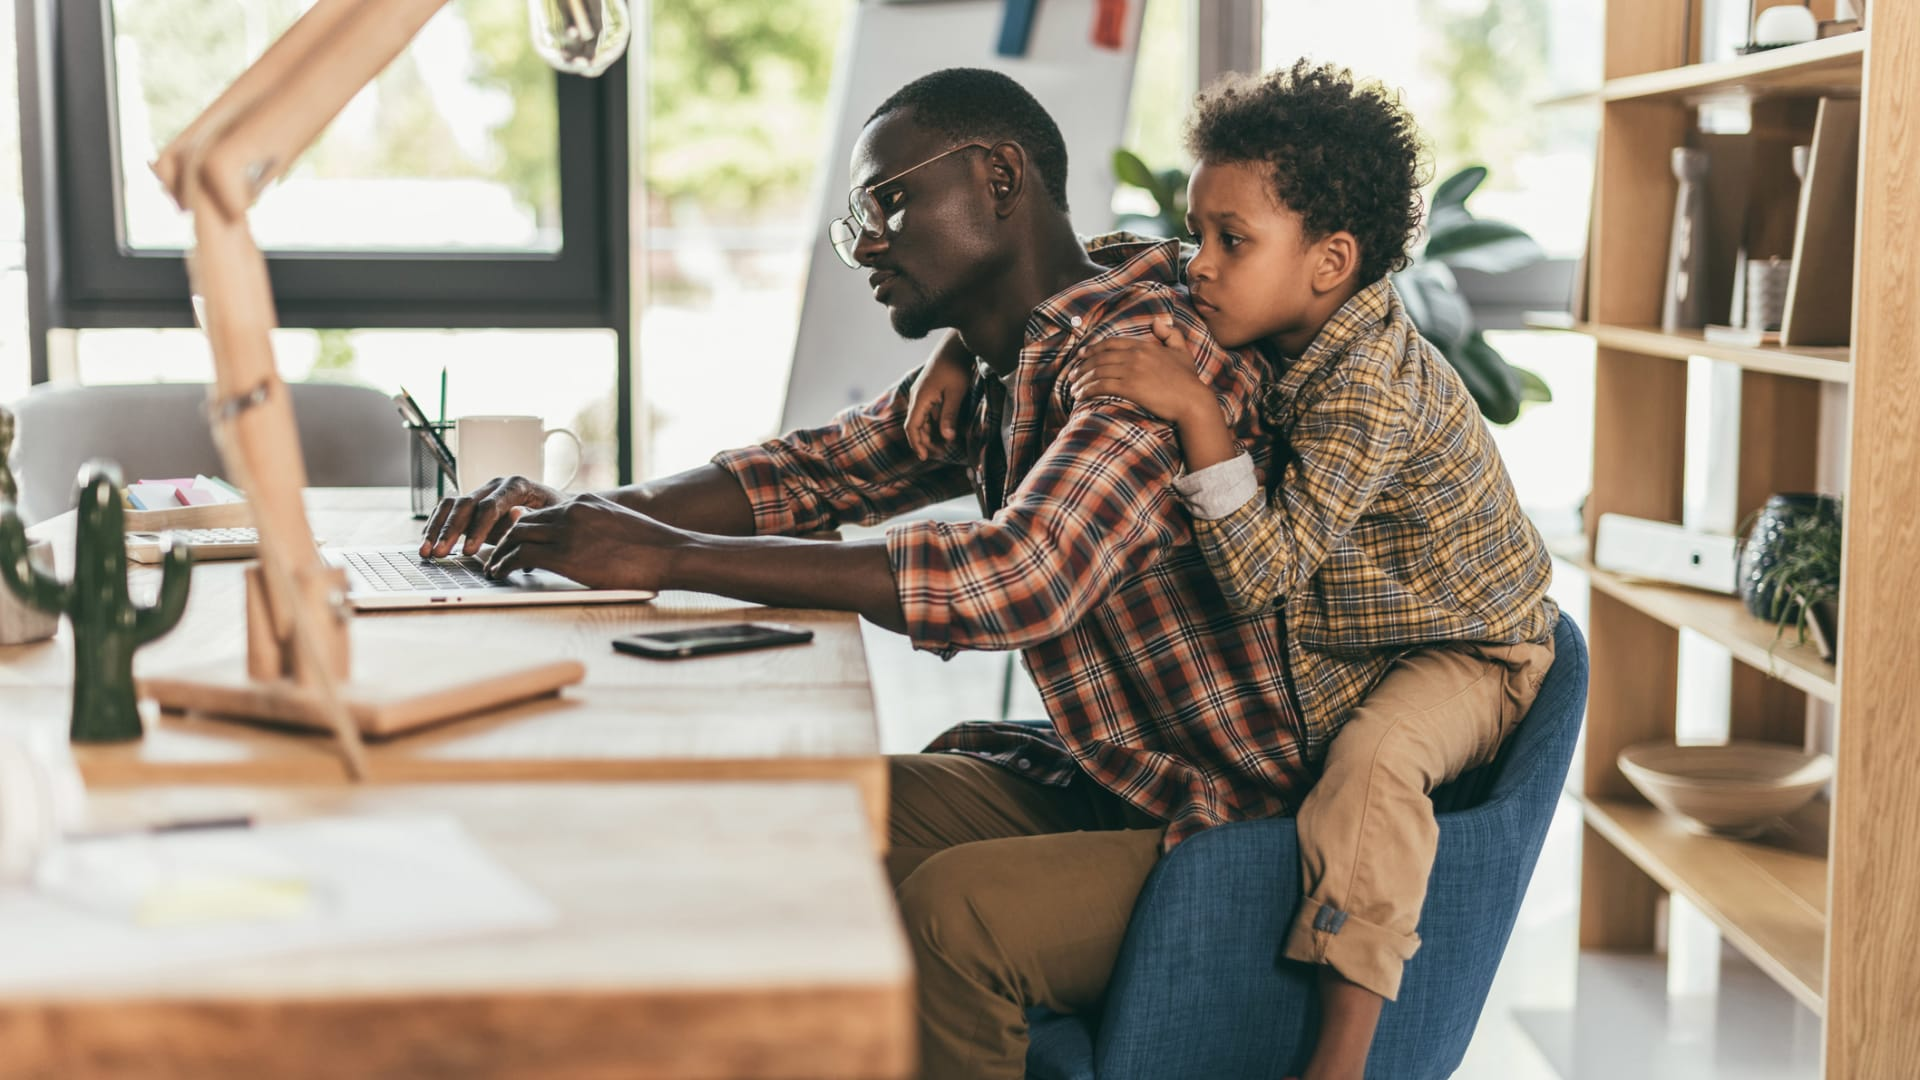 New Survey: Working Parents Are Burned Out, Need More Flexibility and Better Benefits